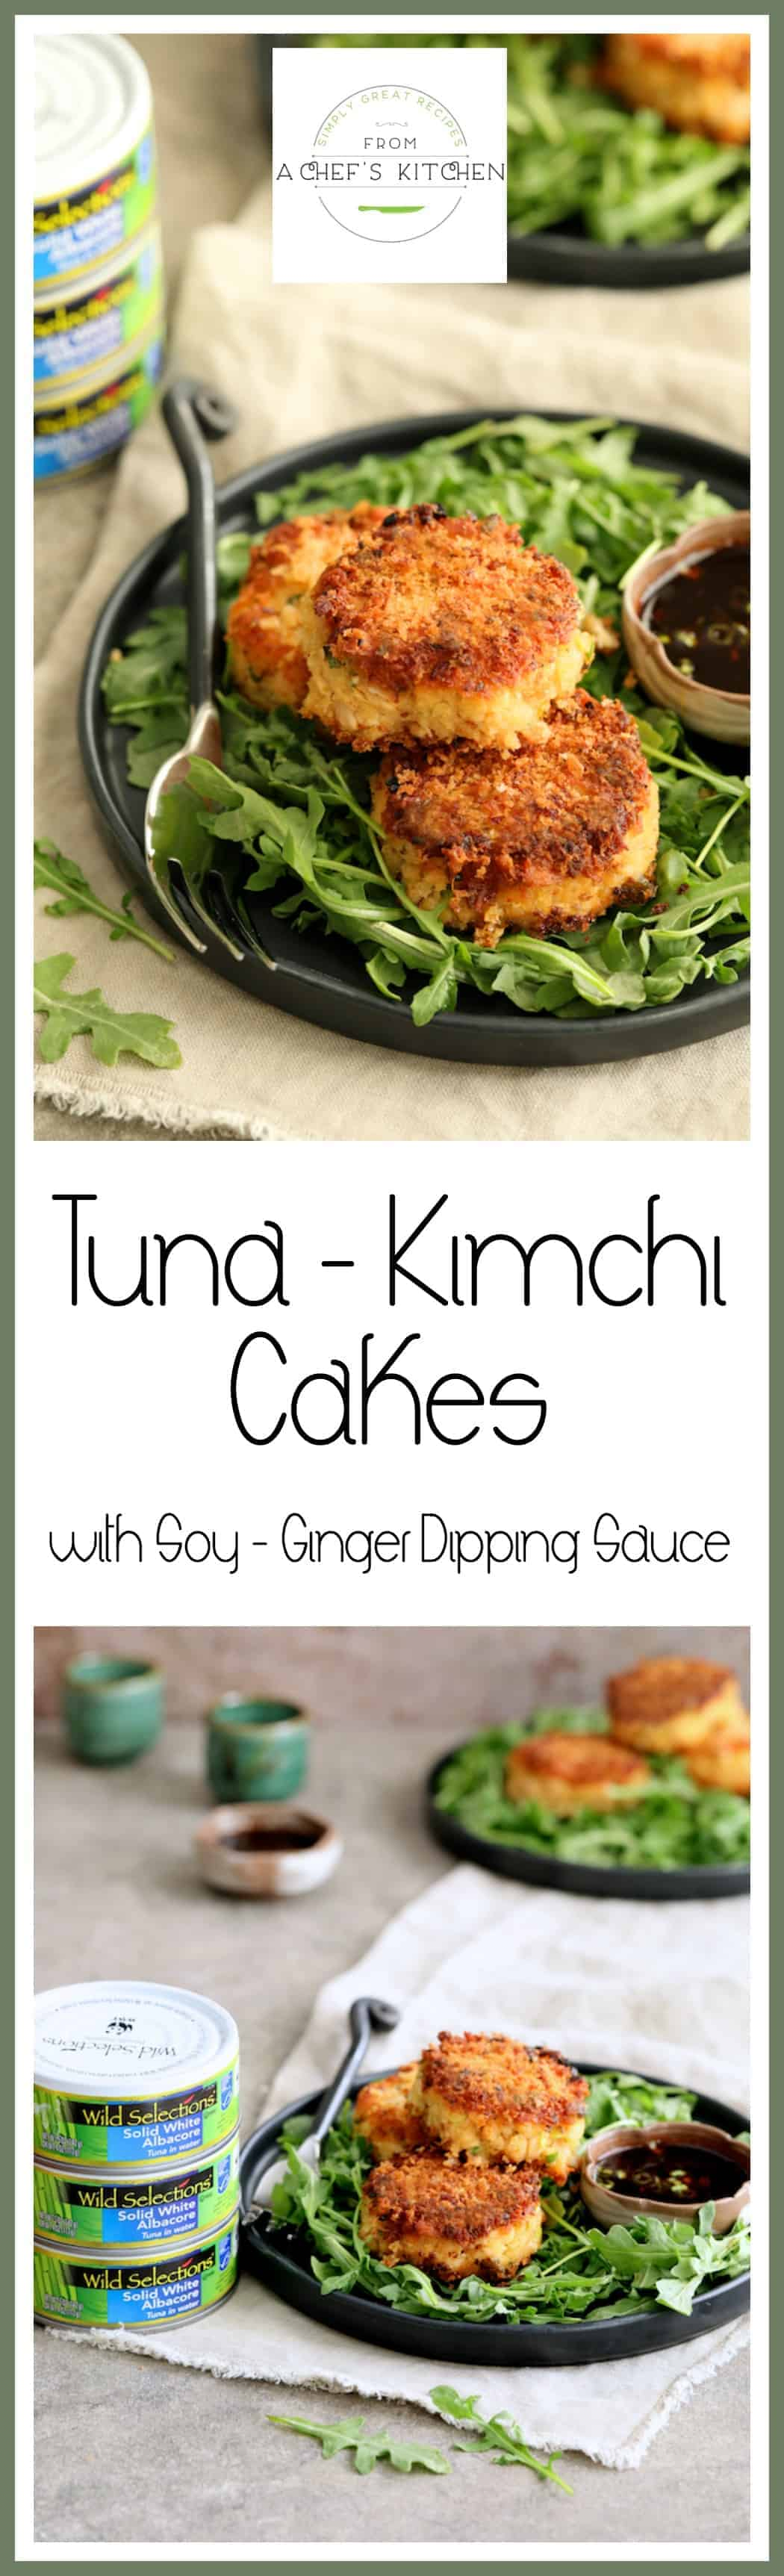 Tuna Kimchi Cakes with Soy Ginger Dipping Sauce are crispy, delicious and packed with flavor! Made withWild Selections® Solid White Albacore Tuna, it's tuna you can feel good about eating.@wildselections (https://www.pinterest.com/wildselections) #WildSelections #SelectSustainable #Ad